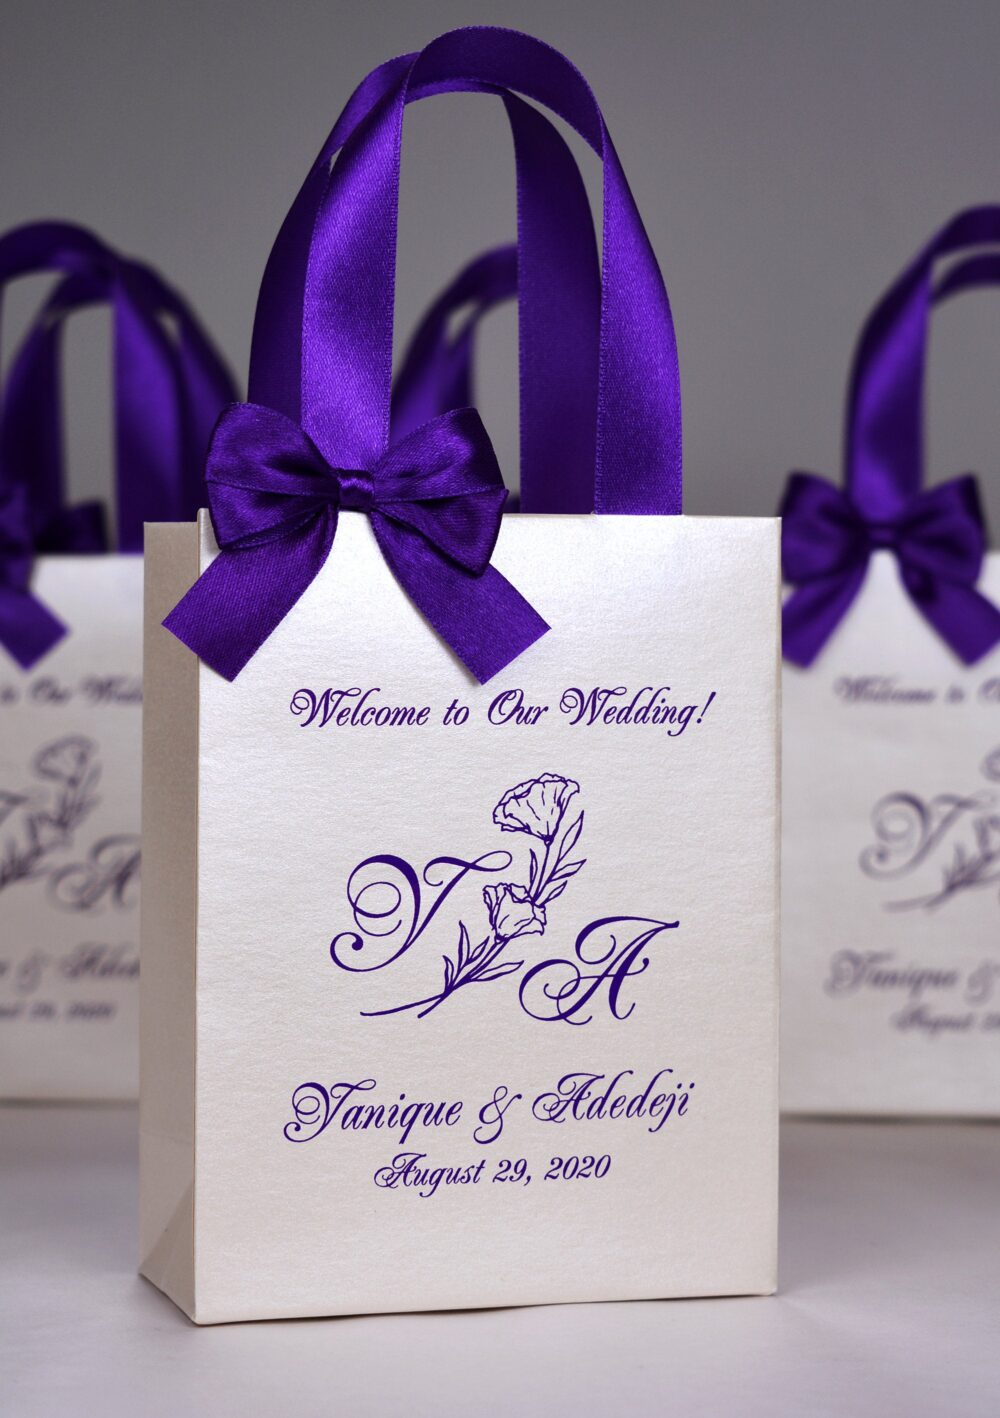 30 Purple & Champagne Wedding Welcome Bags With Satin Ribbon Handles, Bow & Names, Elegant Monogram Wedding Party Favor Bag For Guests